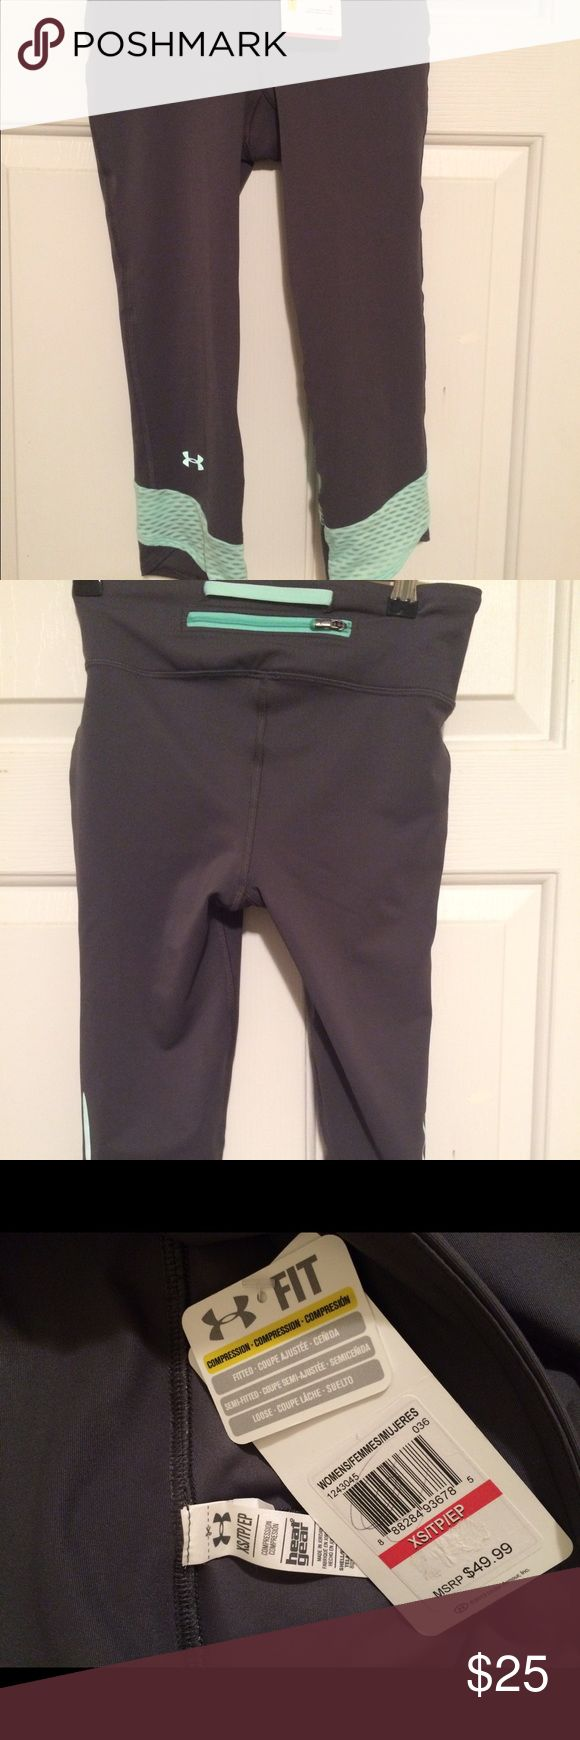 Under Armor grey and mint Capri leggings NWT size XS women's compression heat gear Capri leggings. Love these but was given the wrong size. Under Armour Pants Track Pants & Joggers